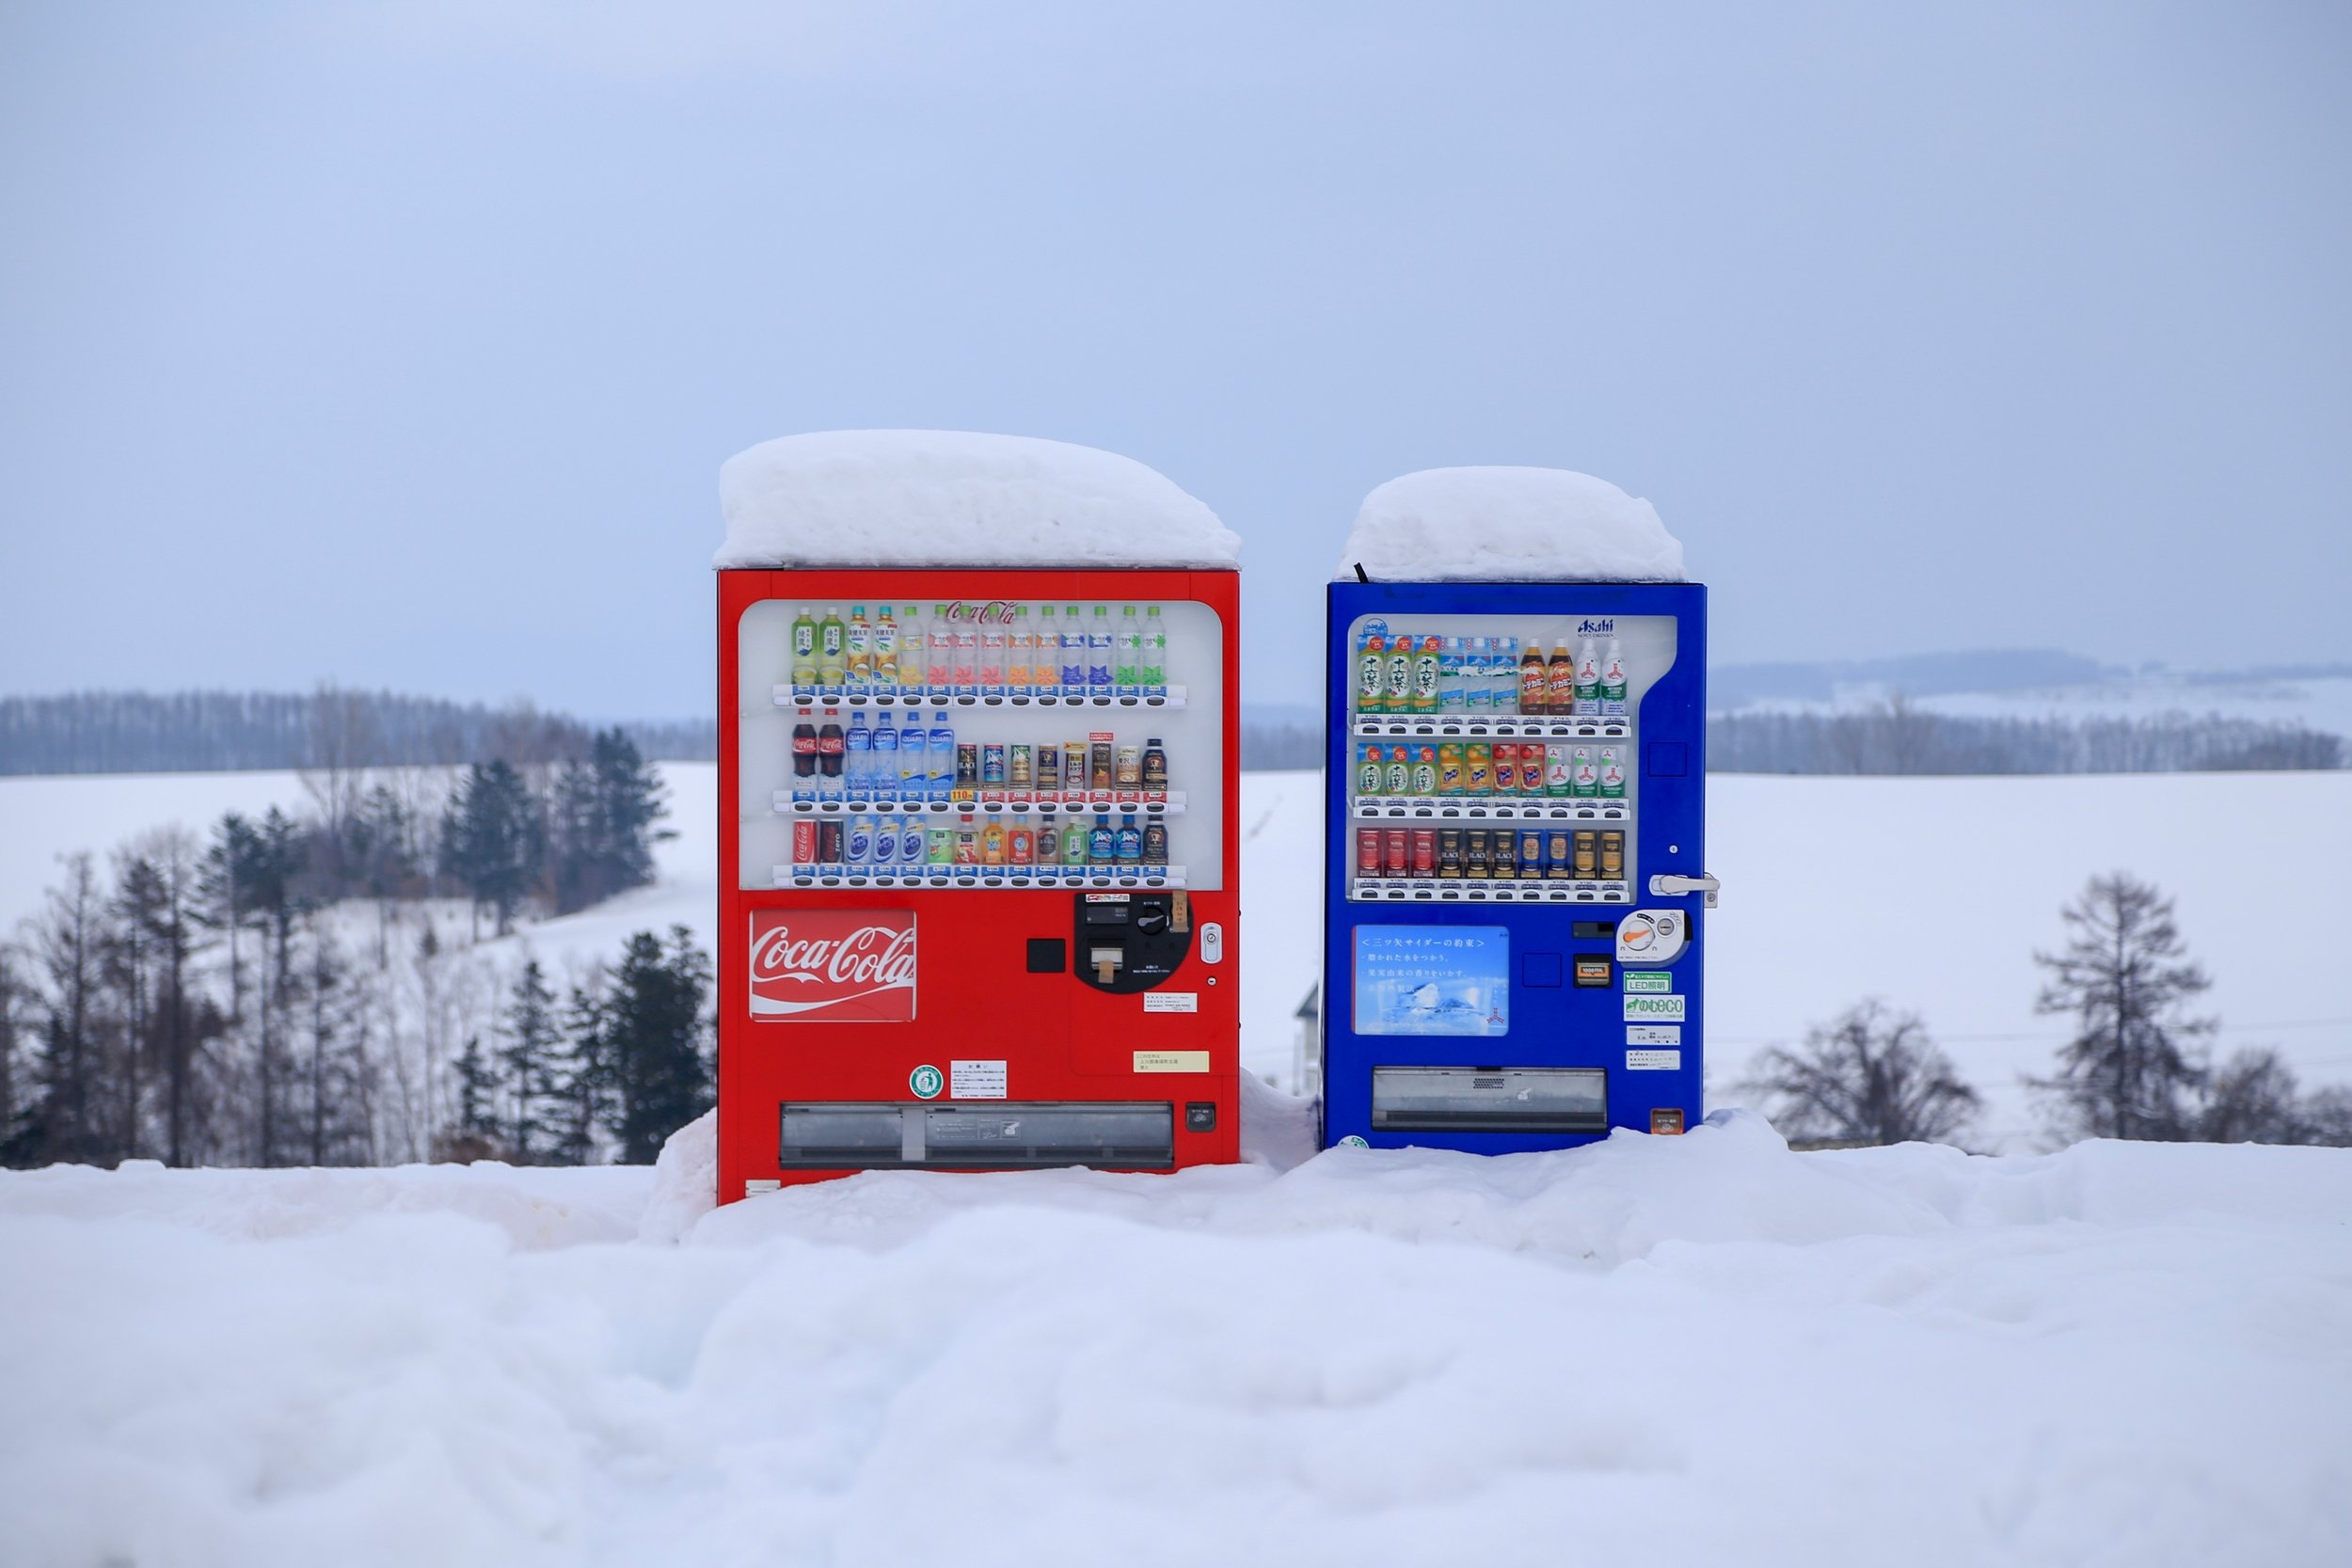 Photo by  Steven Su on  Unsplash | IS GOD A VENDING MACHINE?FIND THE JOURNEY: A NEW GENERATION CHURCH OF CHRIST